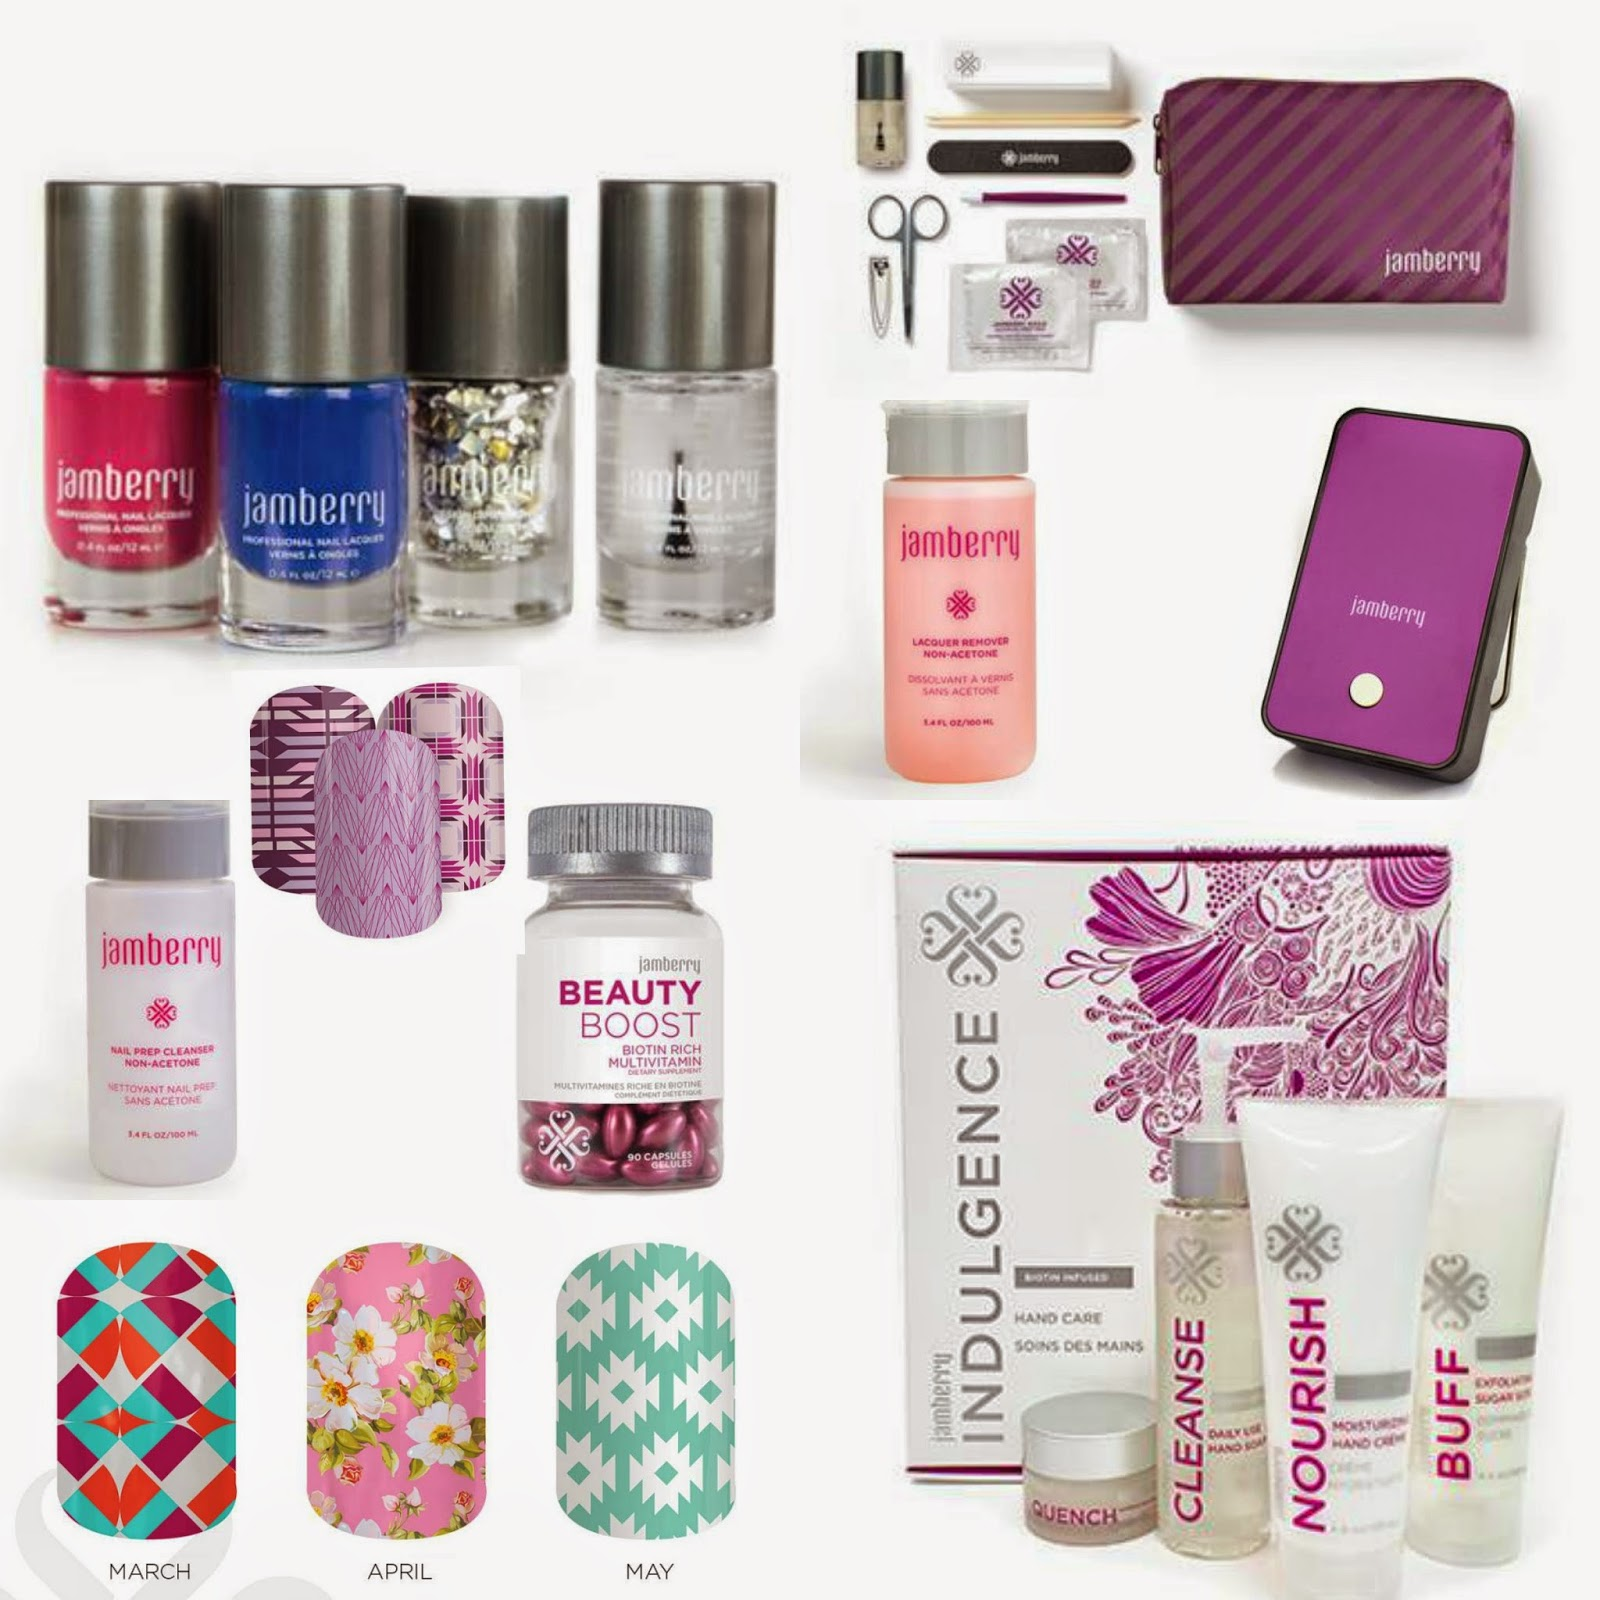 Check it out!  You can choose all of this for 78% off when you host with me!  That's right - $294 worth of Jamberry for just $65?  Jamberry LOVES hosts!